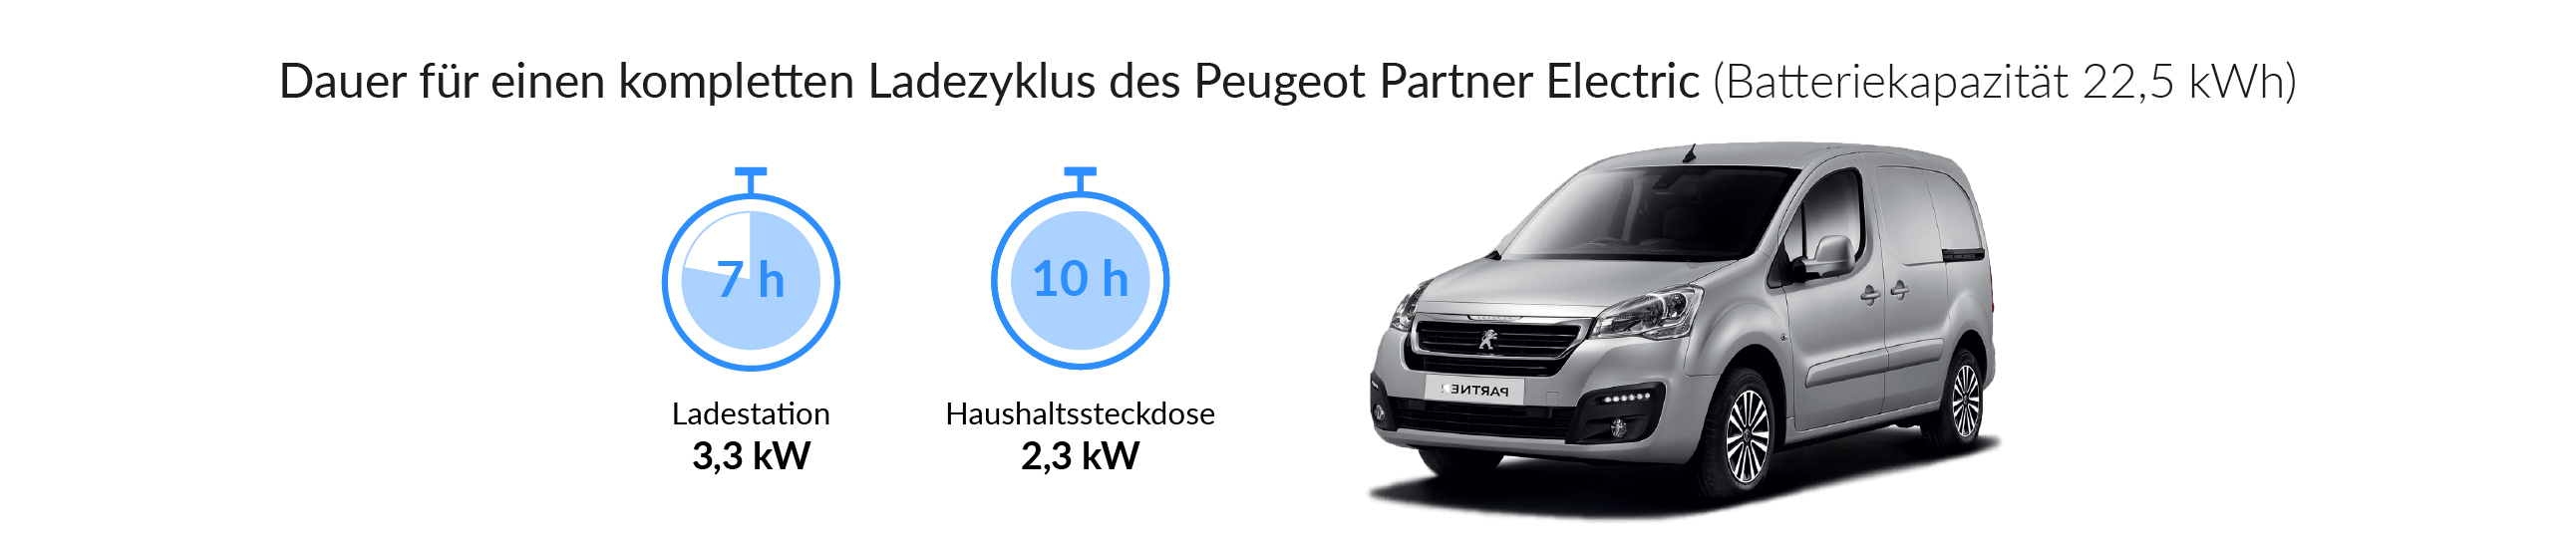 Ladezeiten des Peugeot Partner Electric